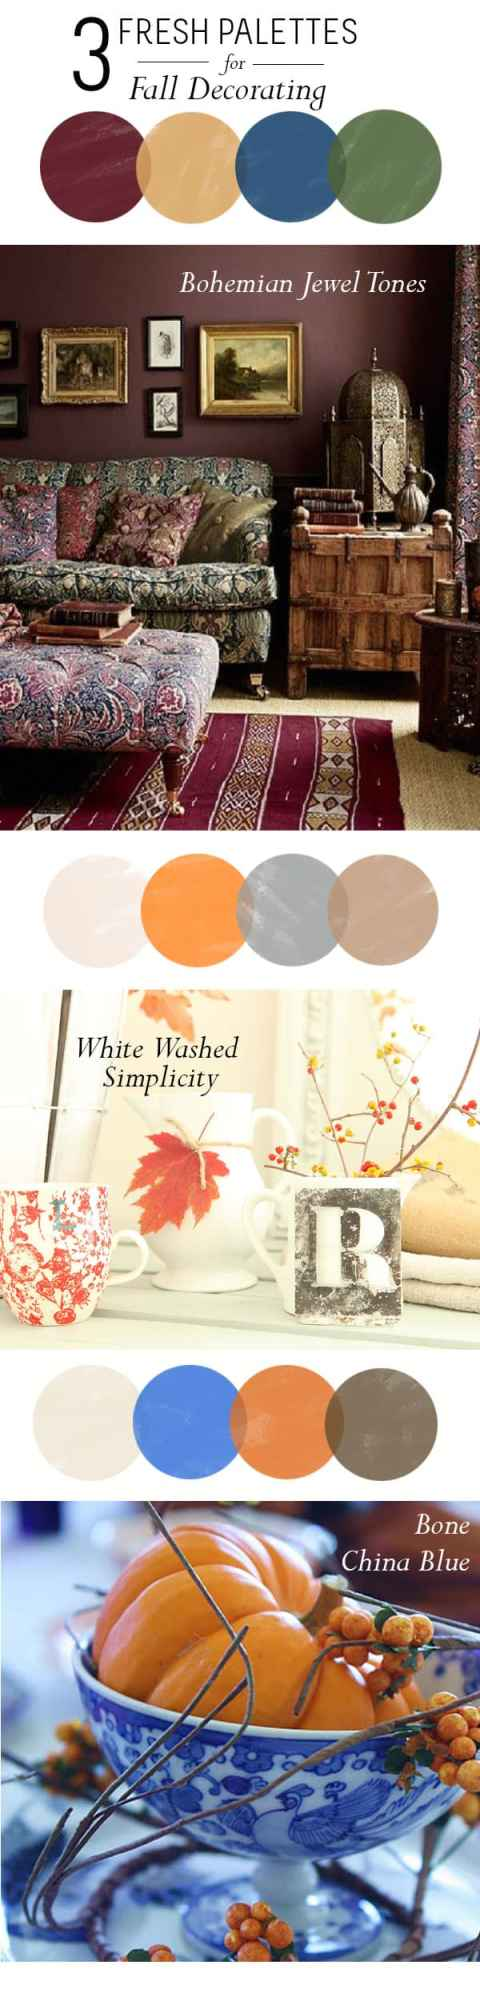 Fall decorating colors